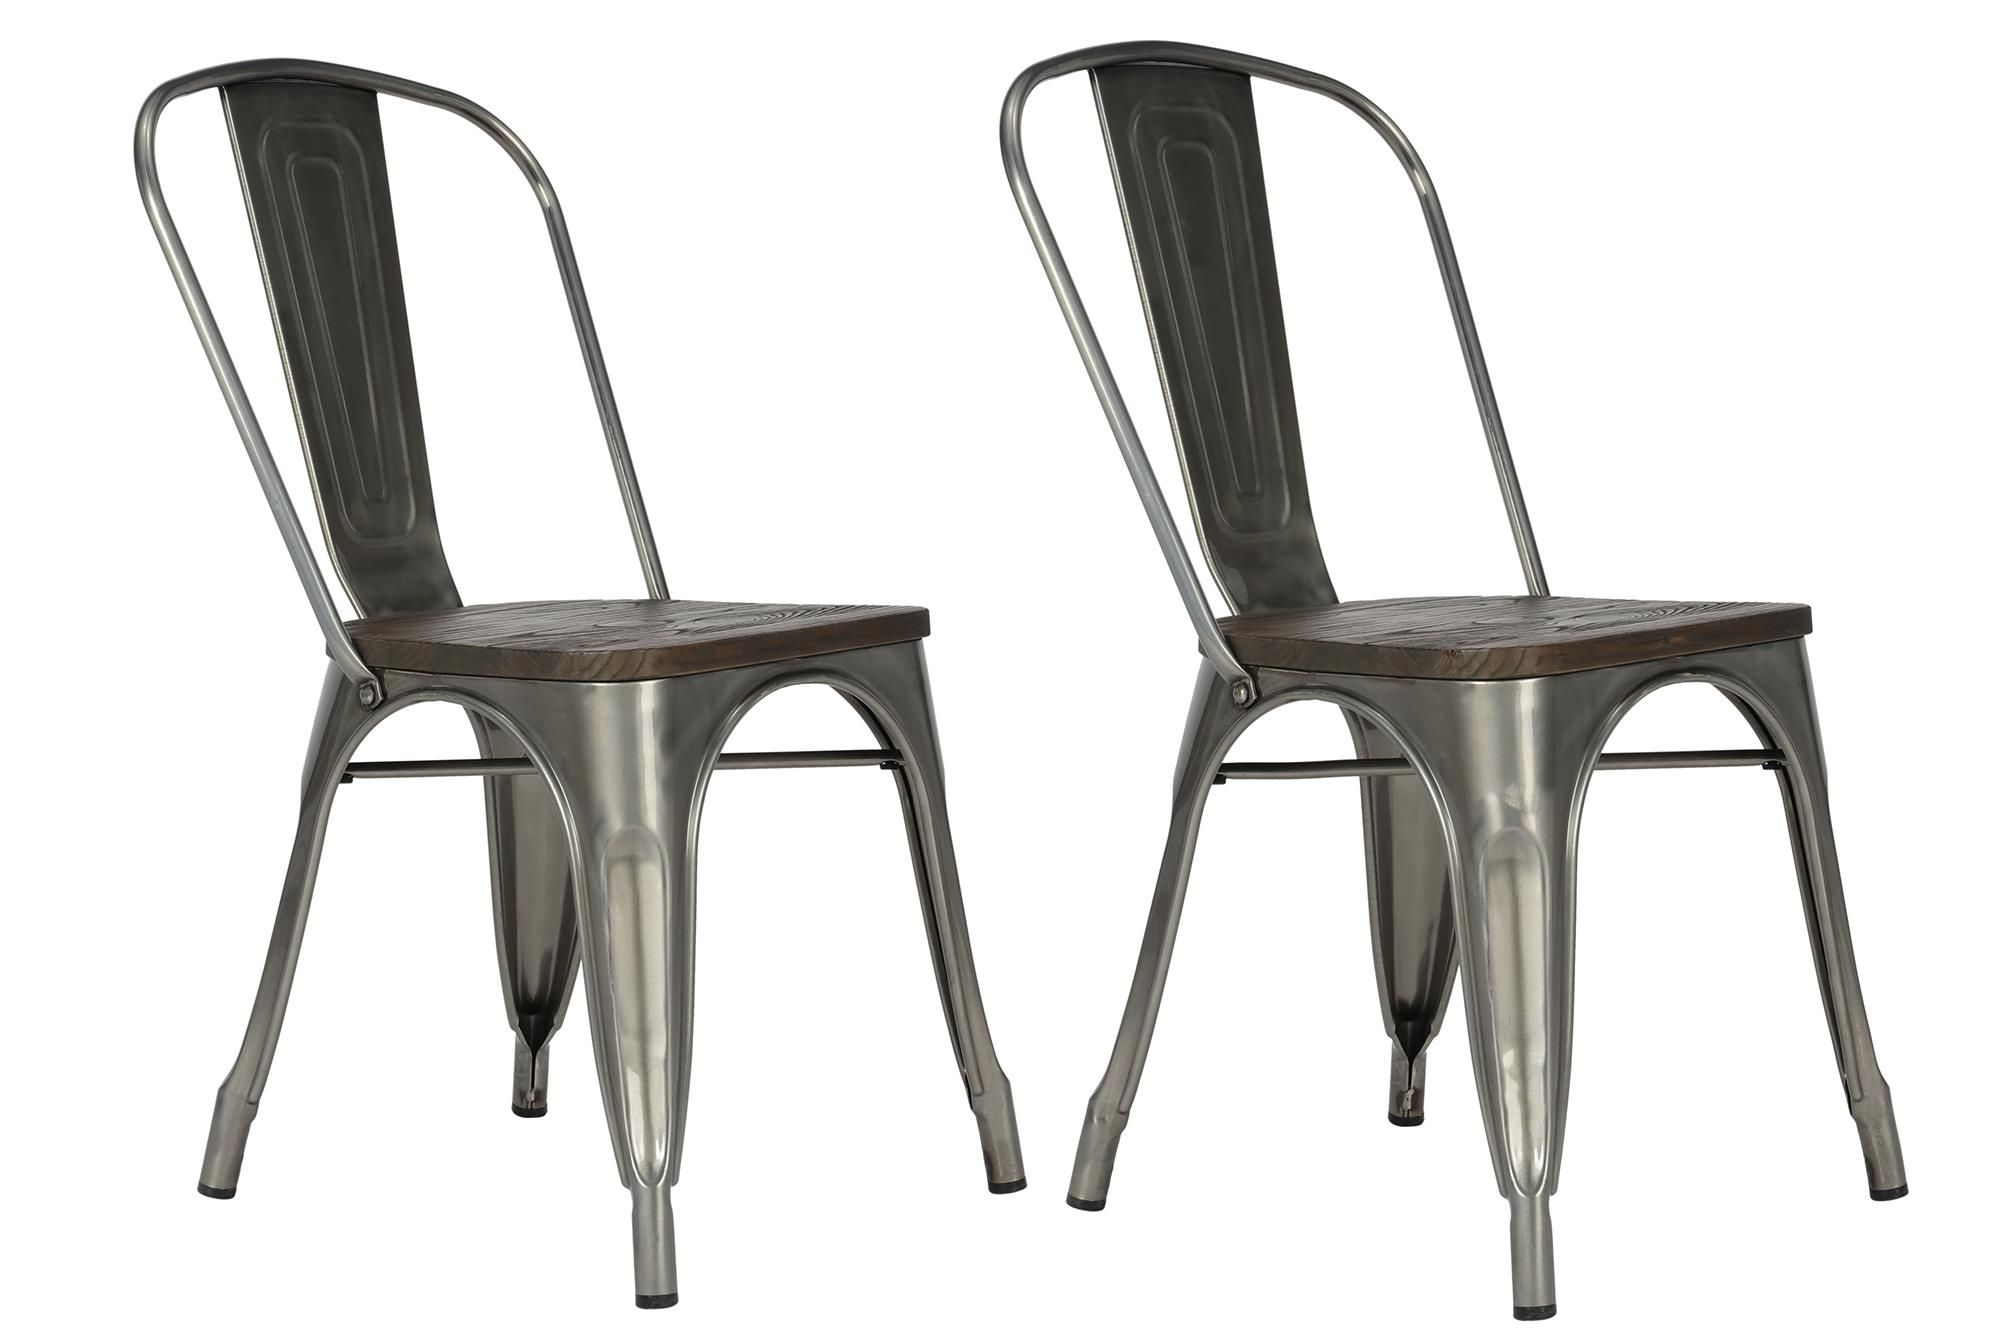 Dorel Home Furnishings Fusion Antique Gunmetal Metal Dining Chair with Wood Seat, Set of 2, Gray